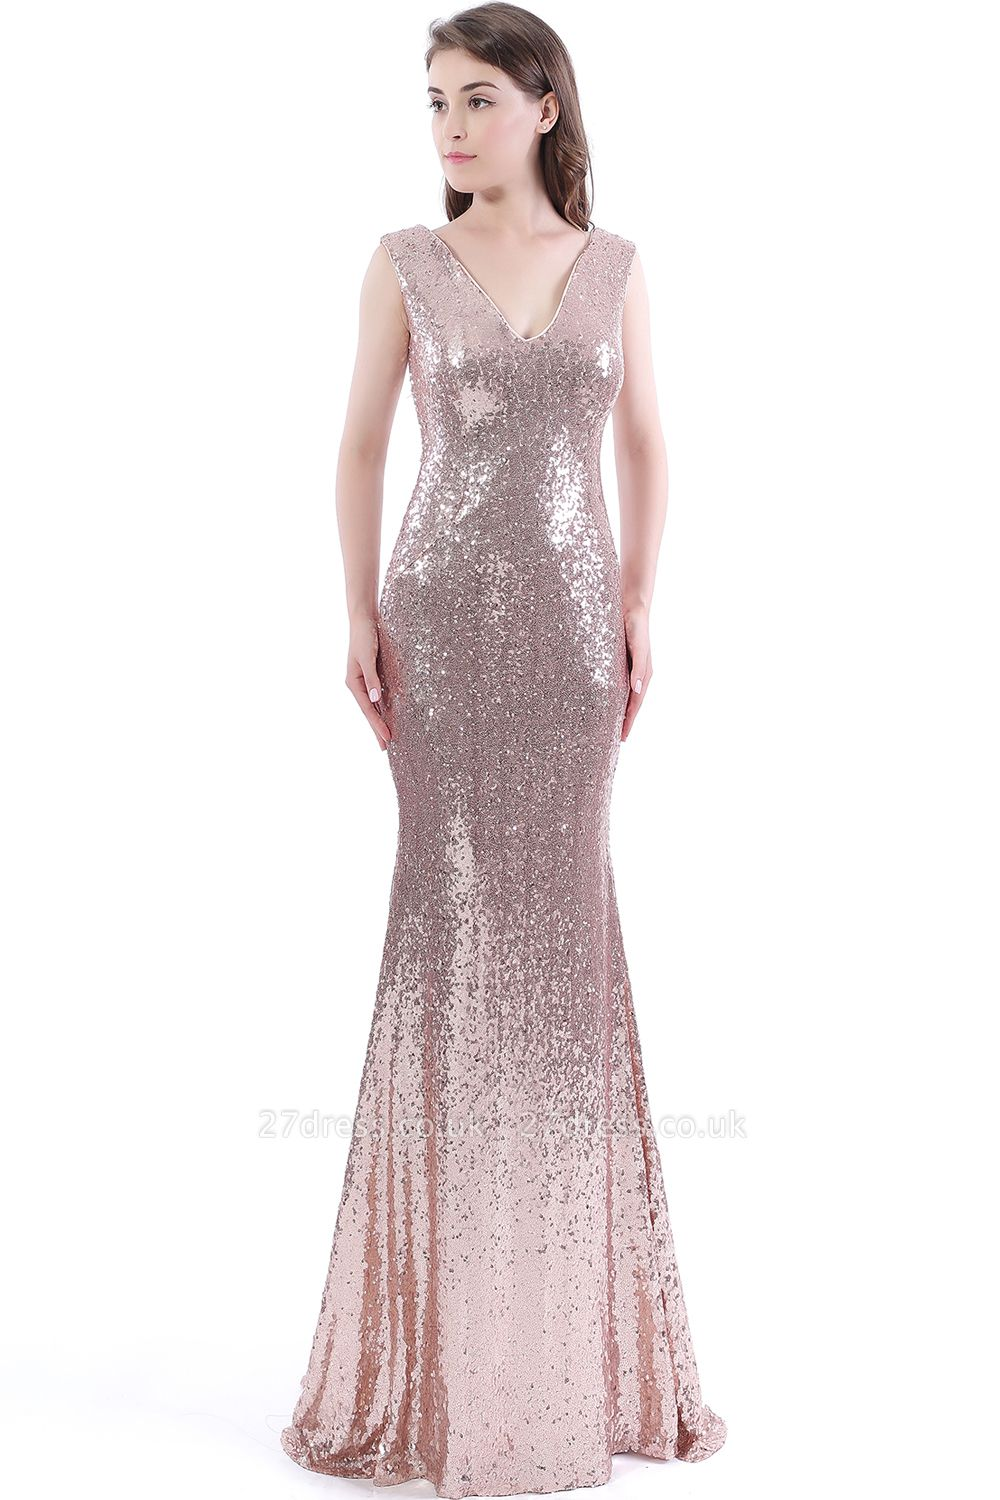 Mermaid V-Neck Simple Sequins Long Evening Dress UKes UK